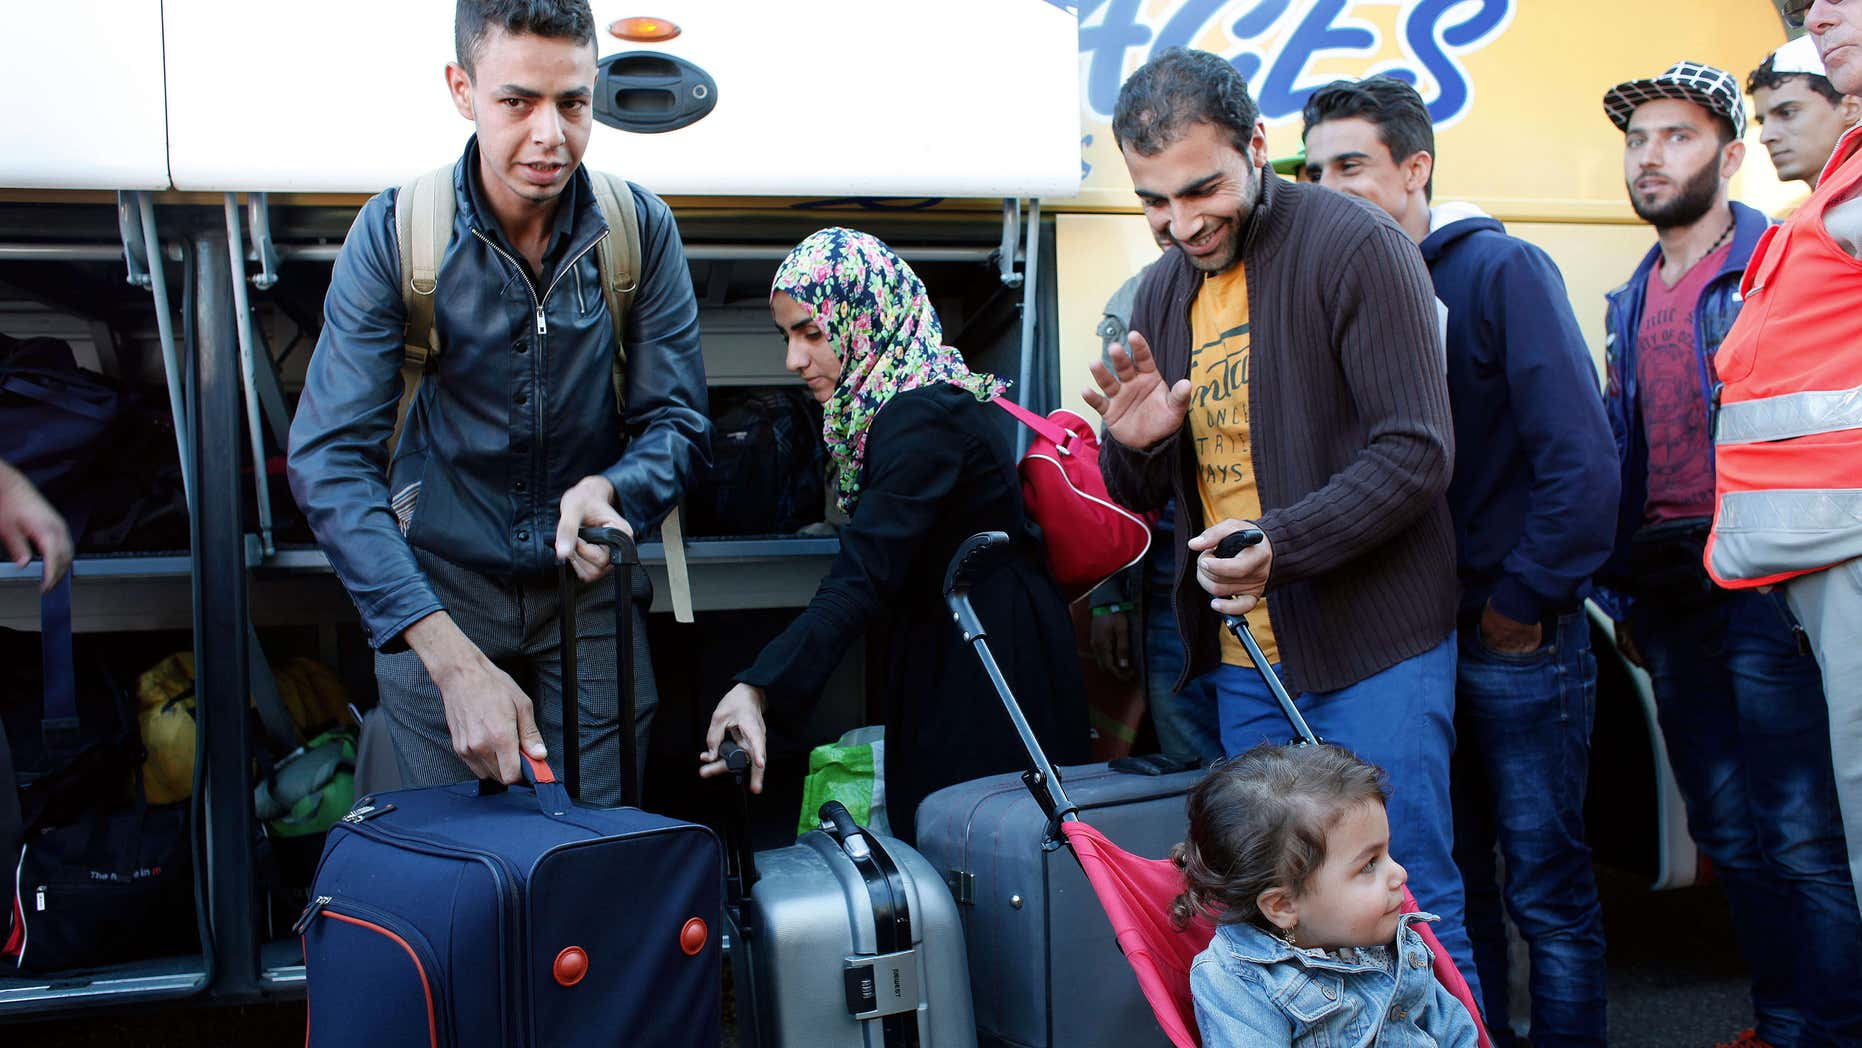 Sept. 9, 2015: Wissam Ahmed, from Iraq, left, and other refugees arrive after an overnight bus trip from Germany, in Champagne-sur-Seine, south of Paris, France.